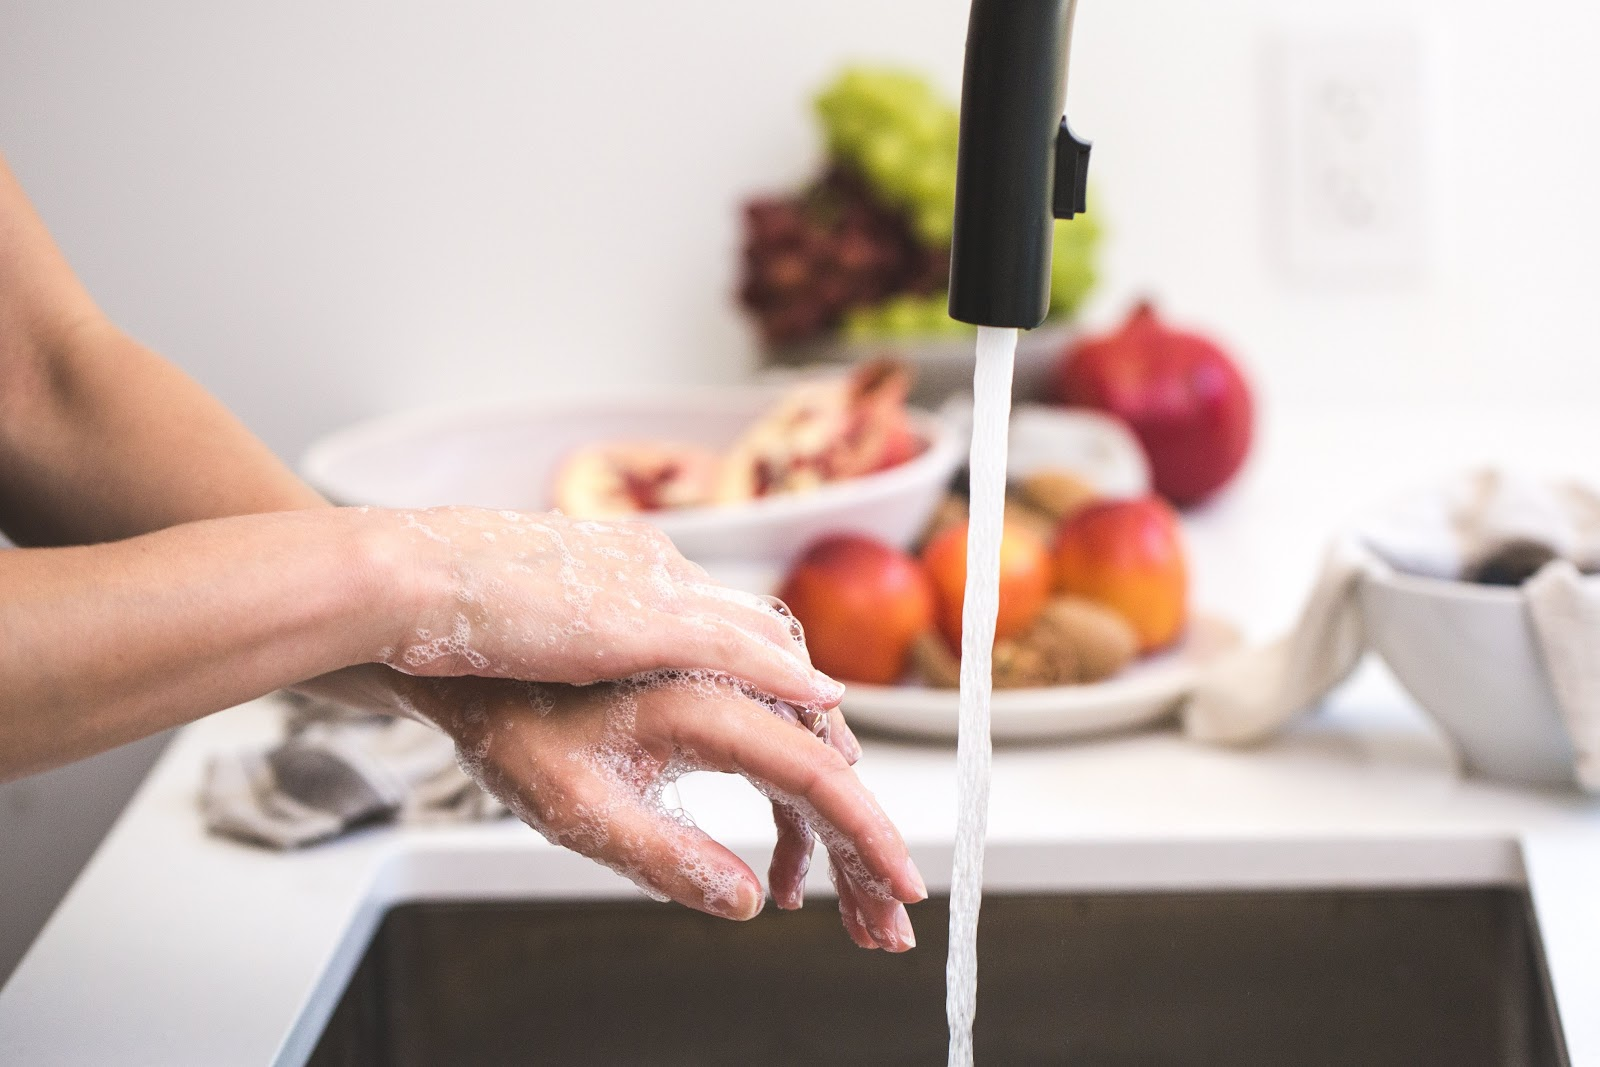 lathering hands under faucet running hard water